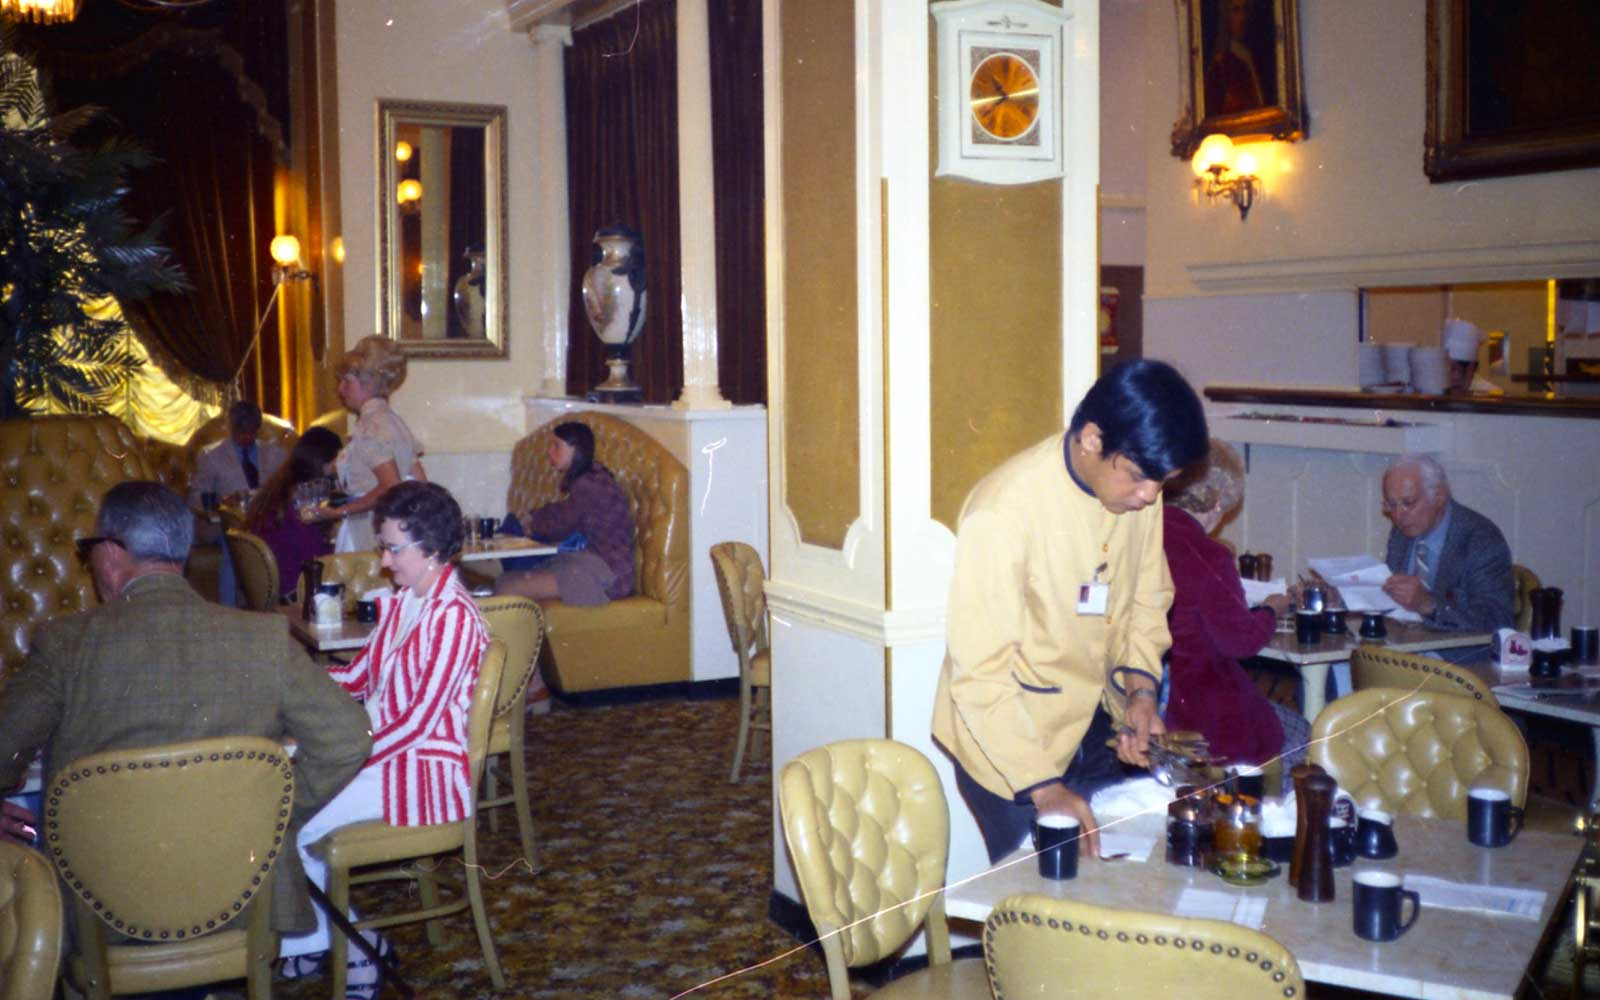 Diners in the Pancake Palace at the San Francisco airport, 1960s